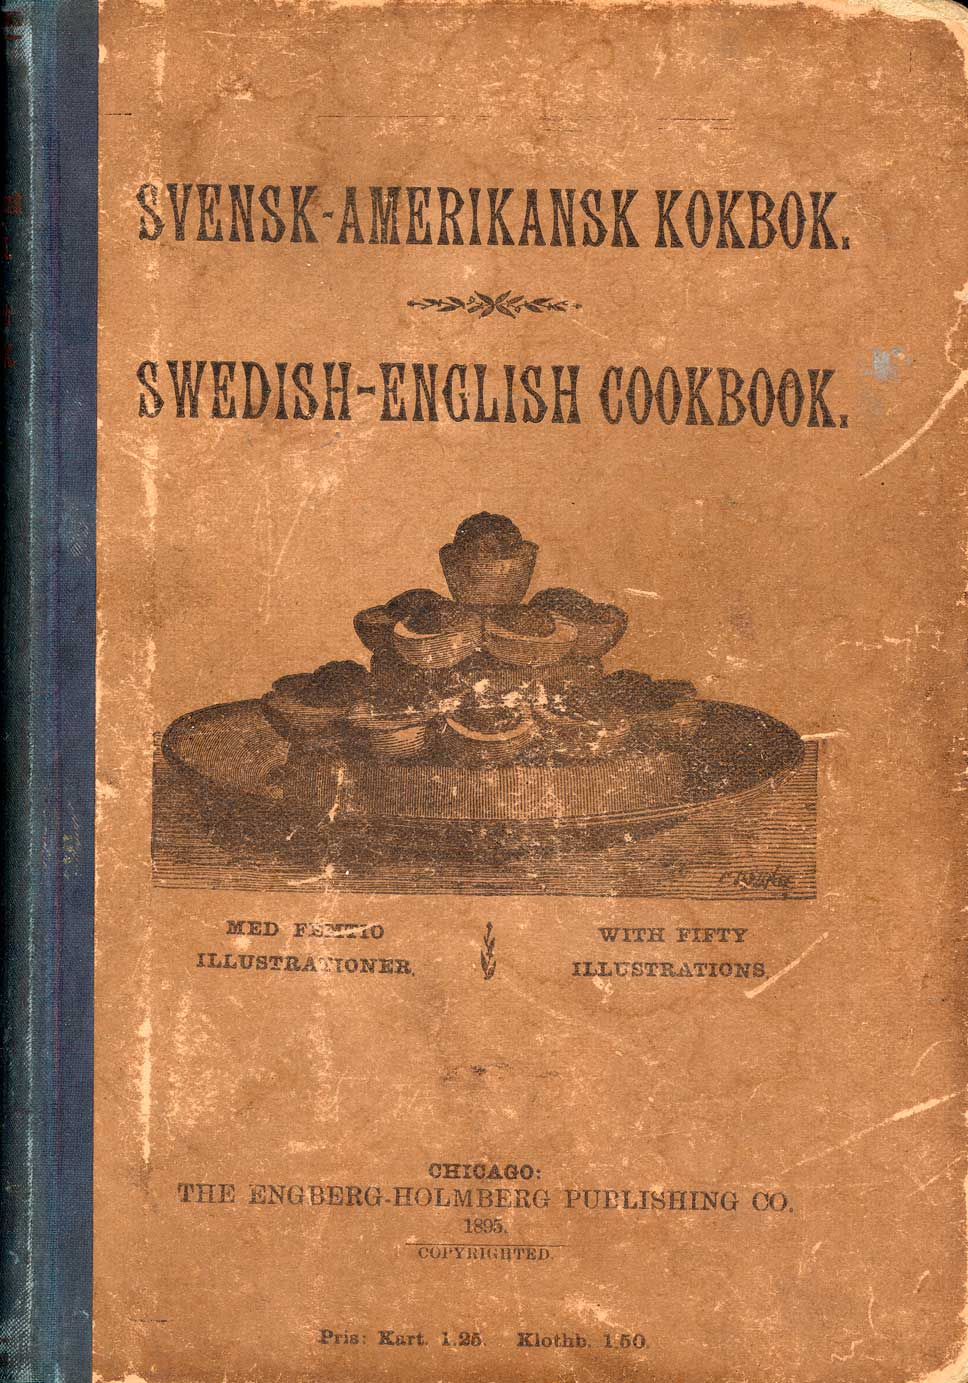 Cover of Svensk-Amerikansk Kokbok / Swedish-English Cookbook